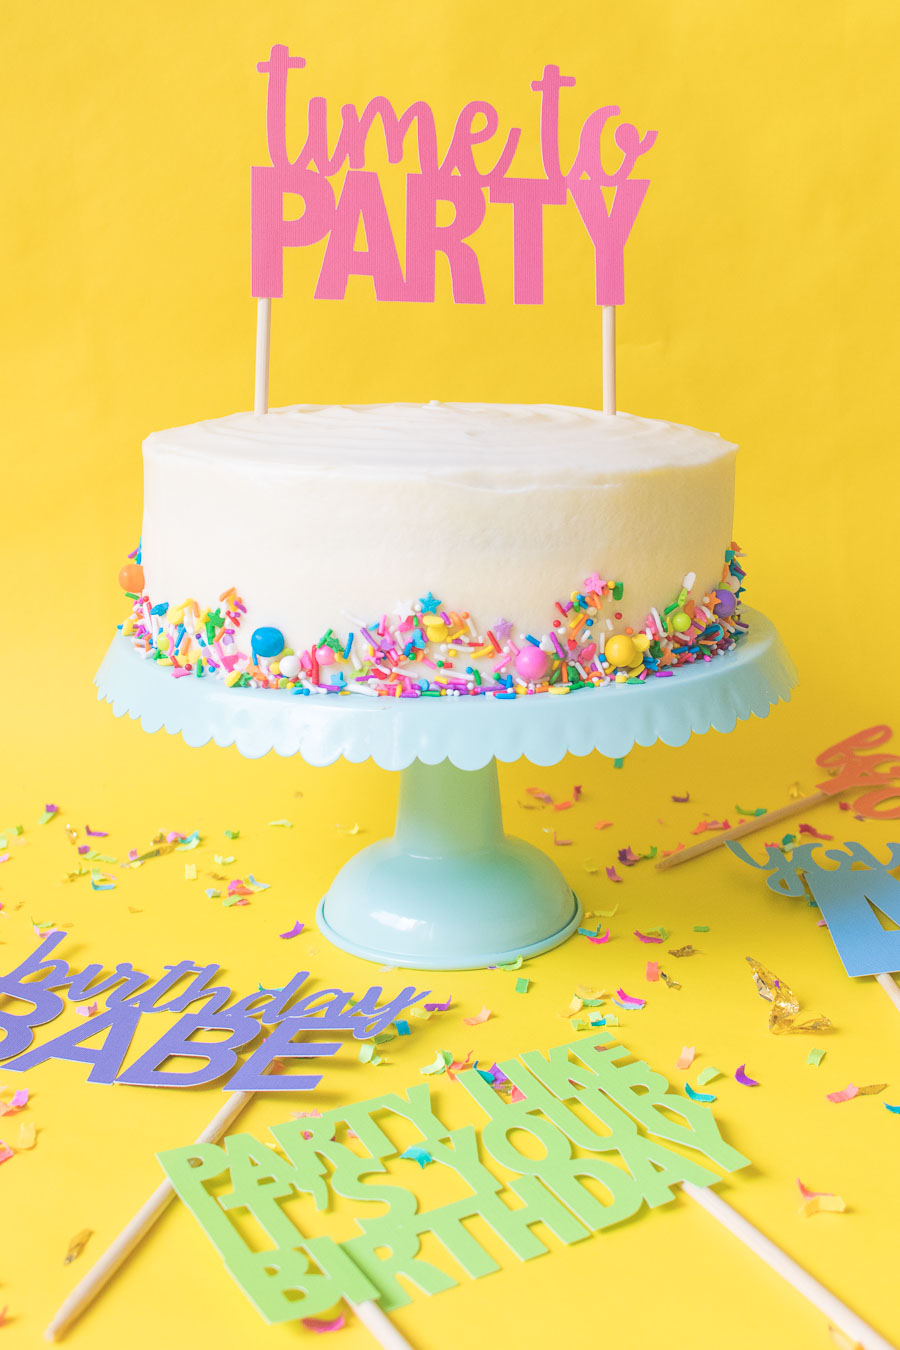 Printable Cake Toppers For Birthdays (+ Free Svg Templates!) - Free Printable Happy Birthday Cake Topper